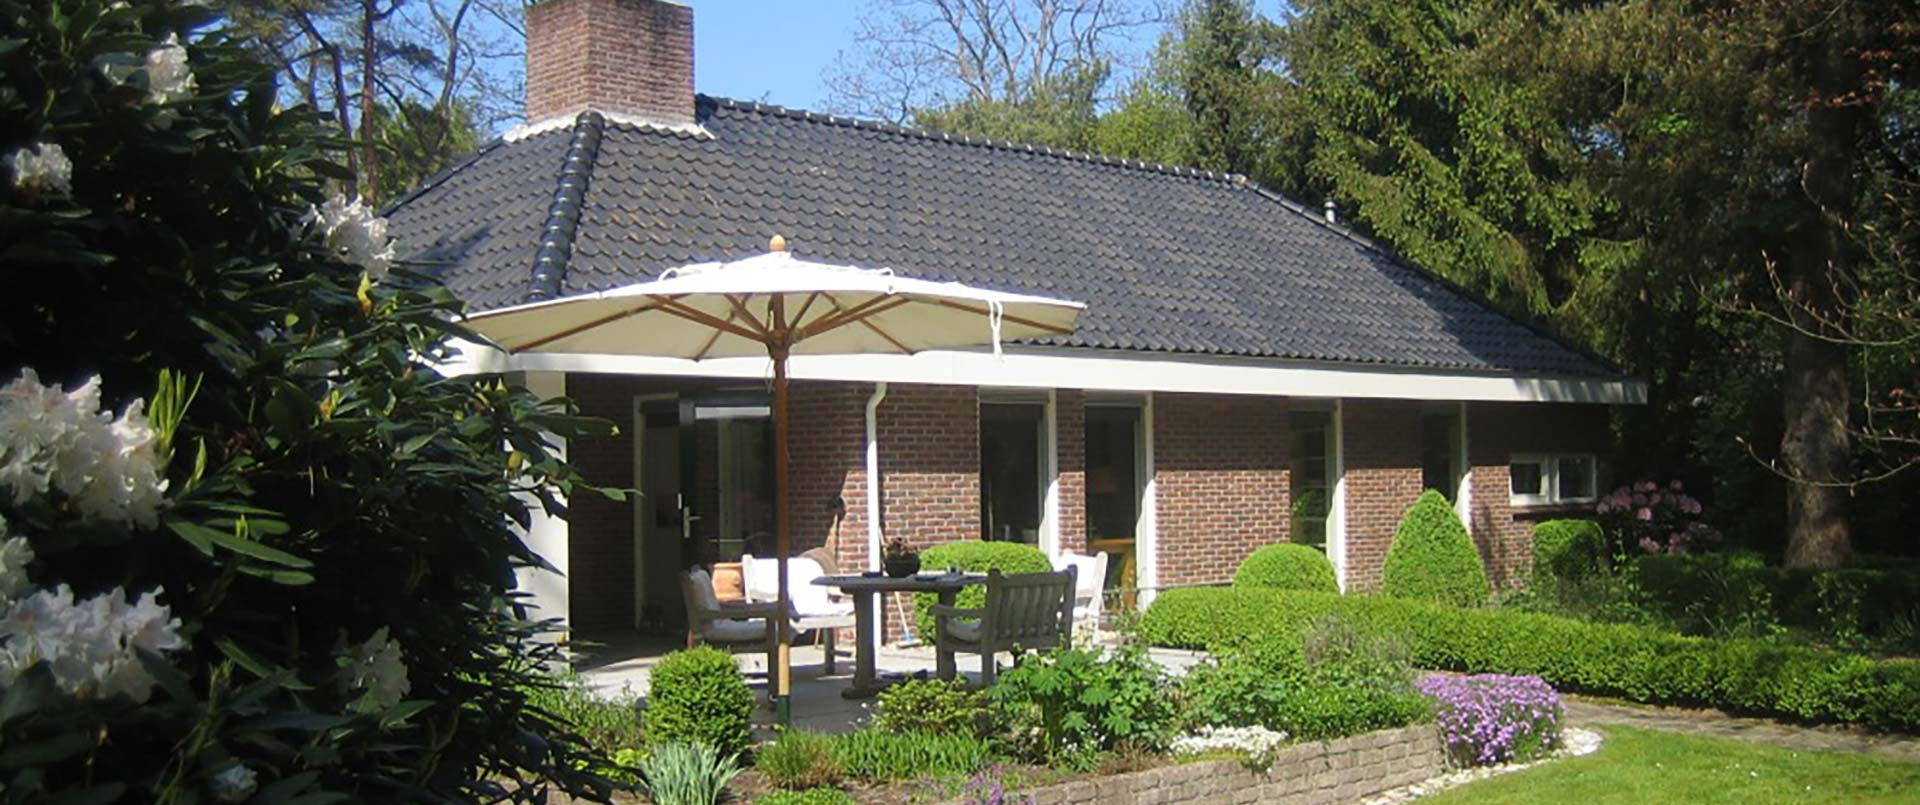 overnachten in Drenthe, bed and breakfast zuidlaren, BB Schipborg